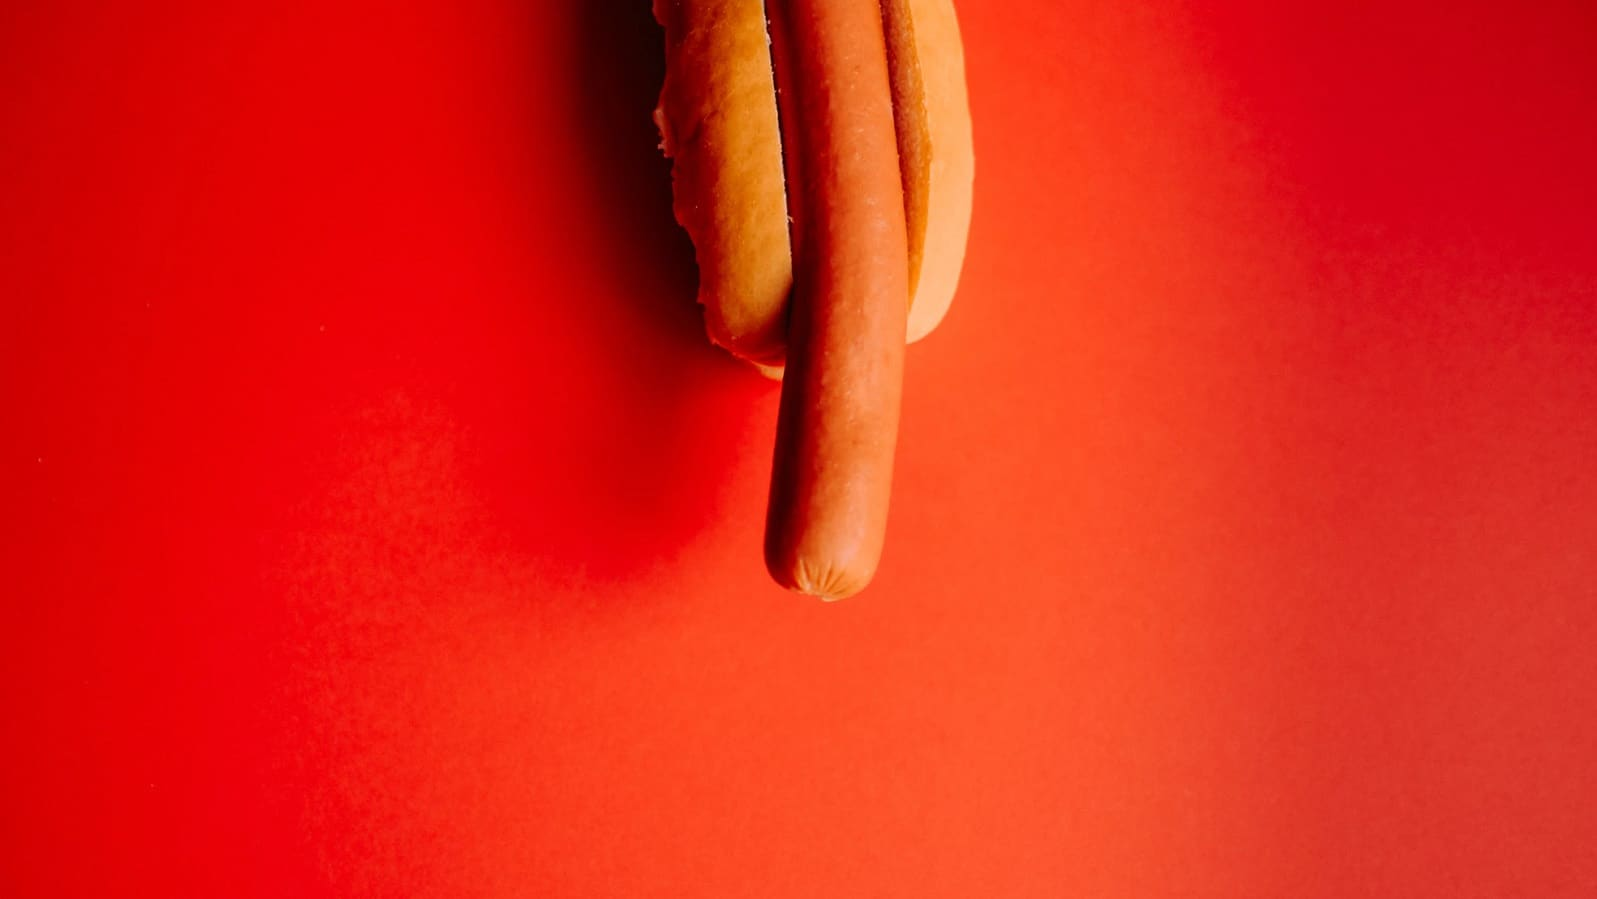 dick pic attack app featuring a hotdog on red background